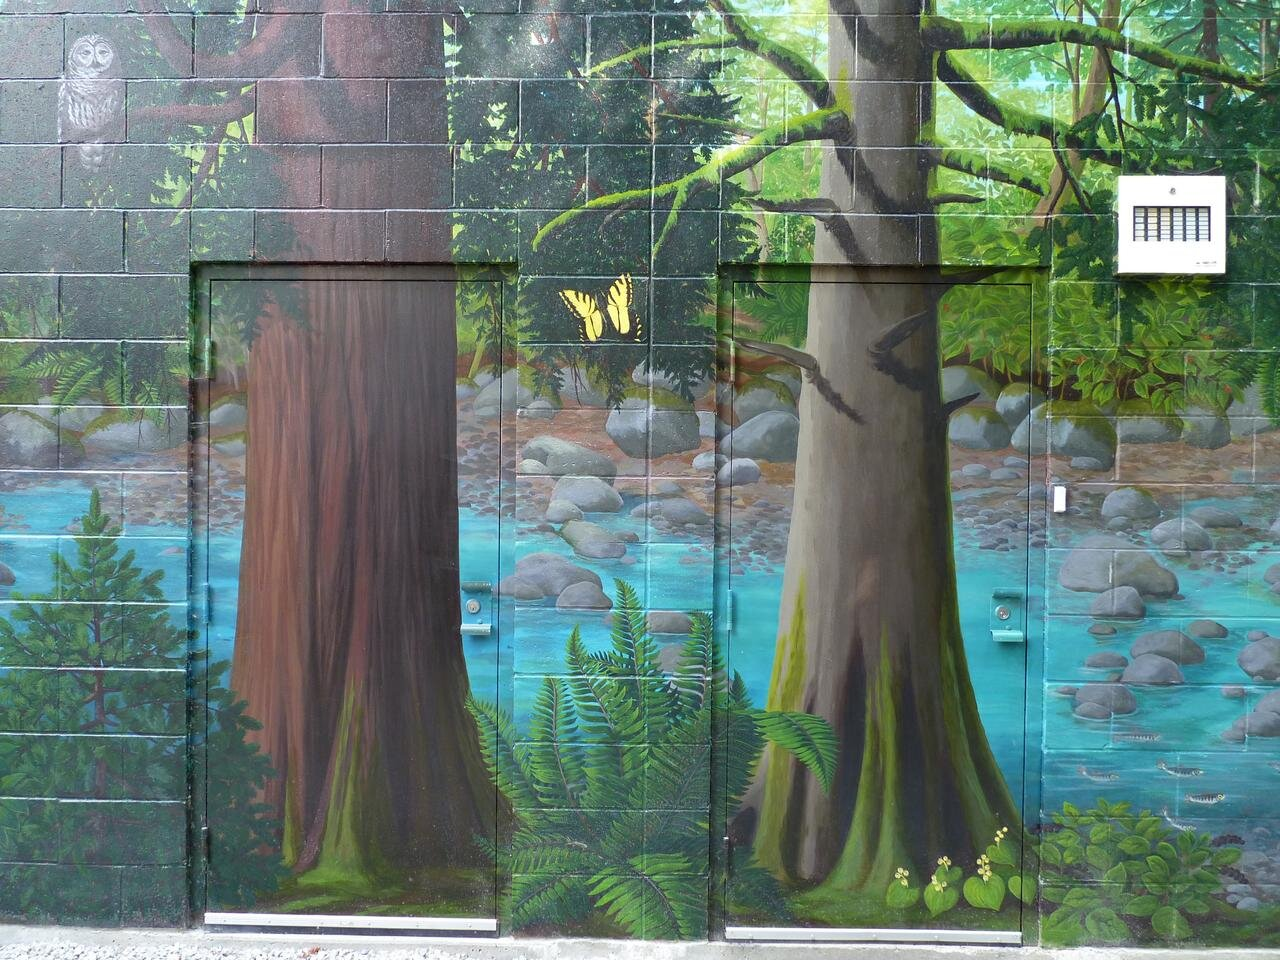 hyde_creek_nature_murals_by_artist_kim_hunter_d4aosxq-fullview.jpg